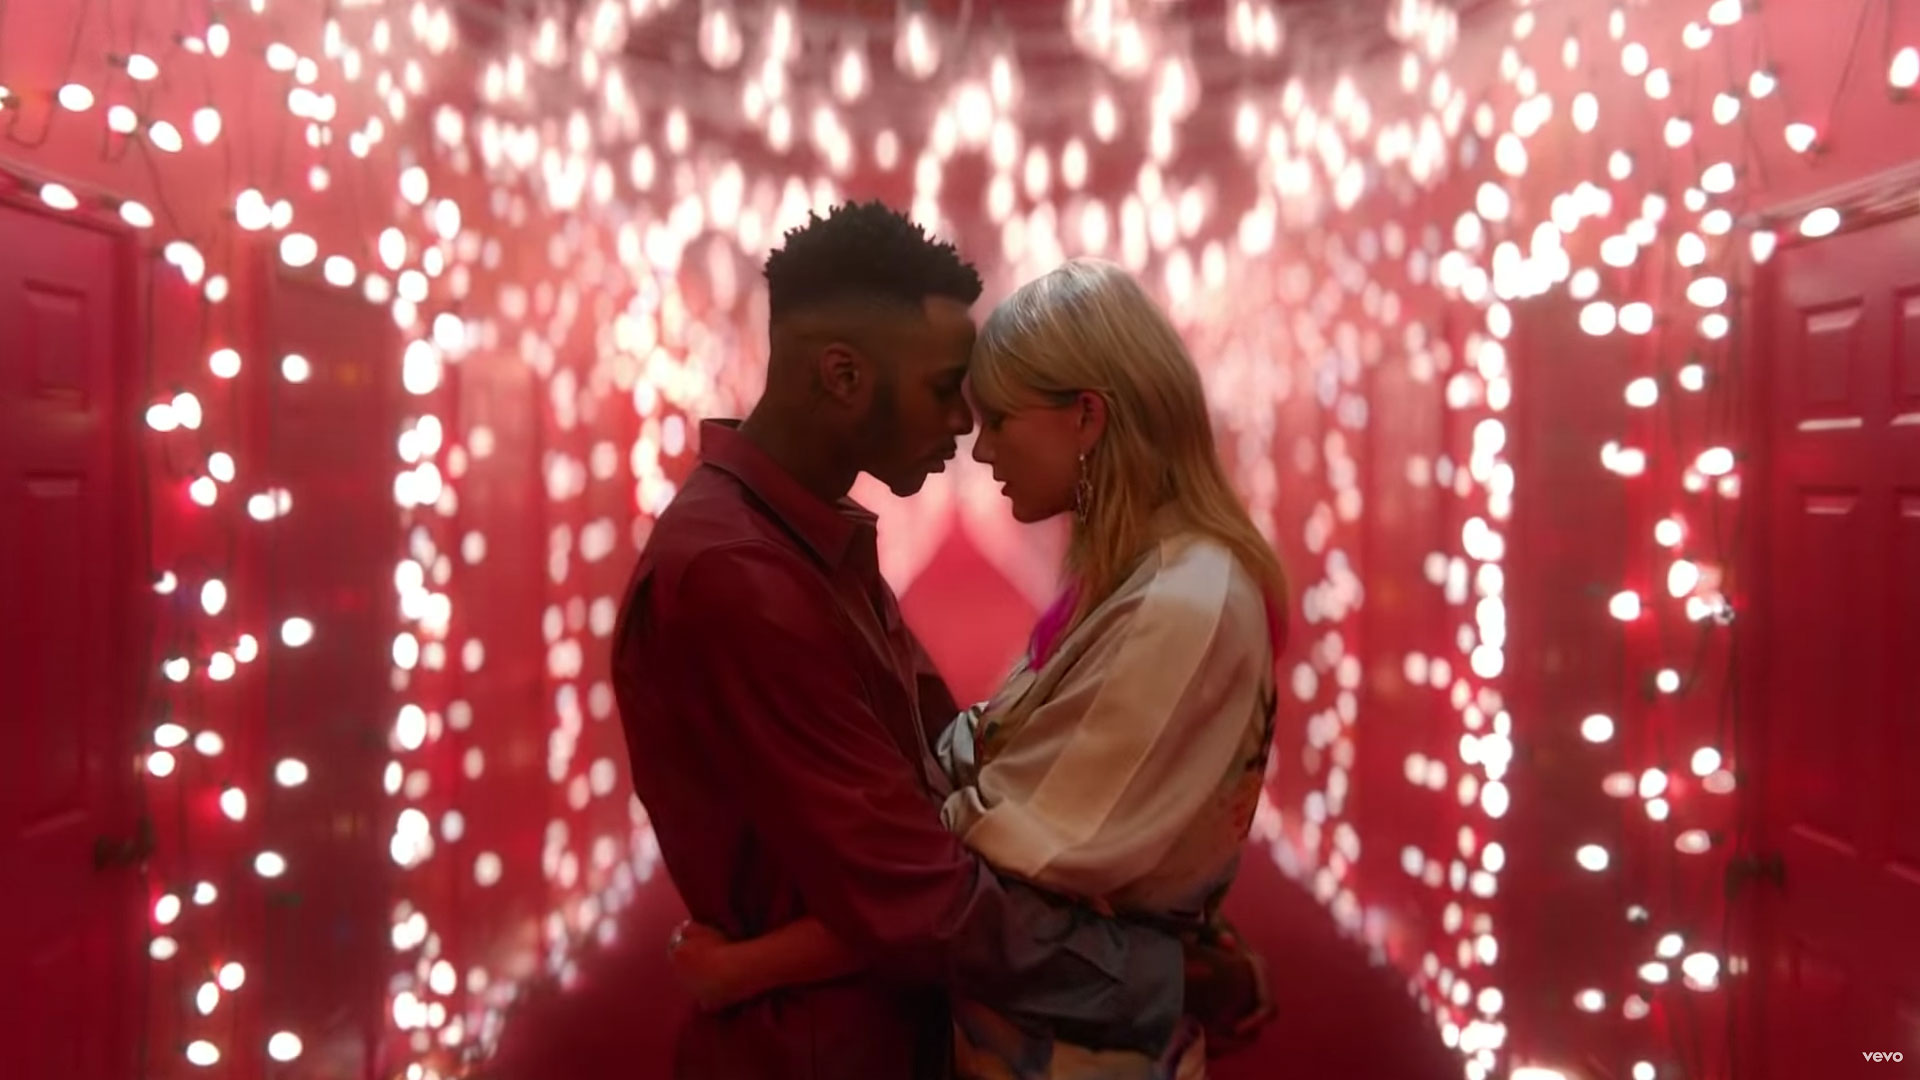 Taylor Swift Drops Romantic 'Lover' Music Video: Watch